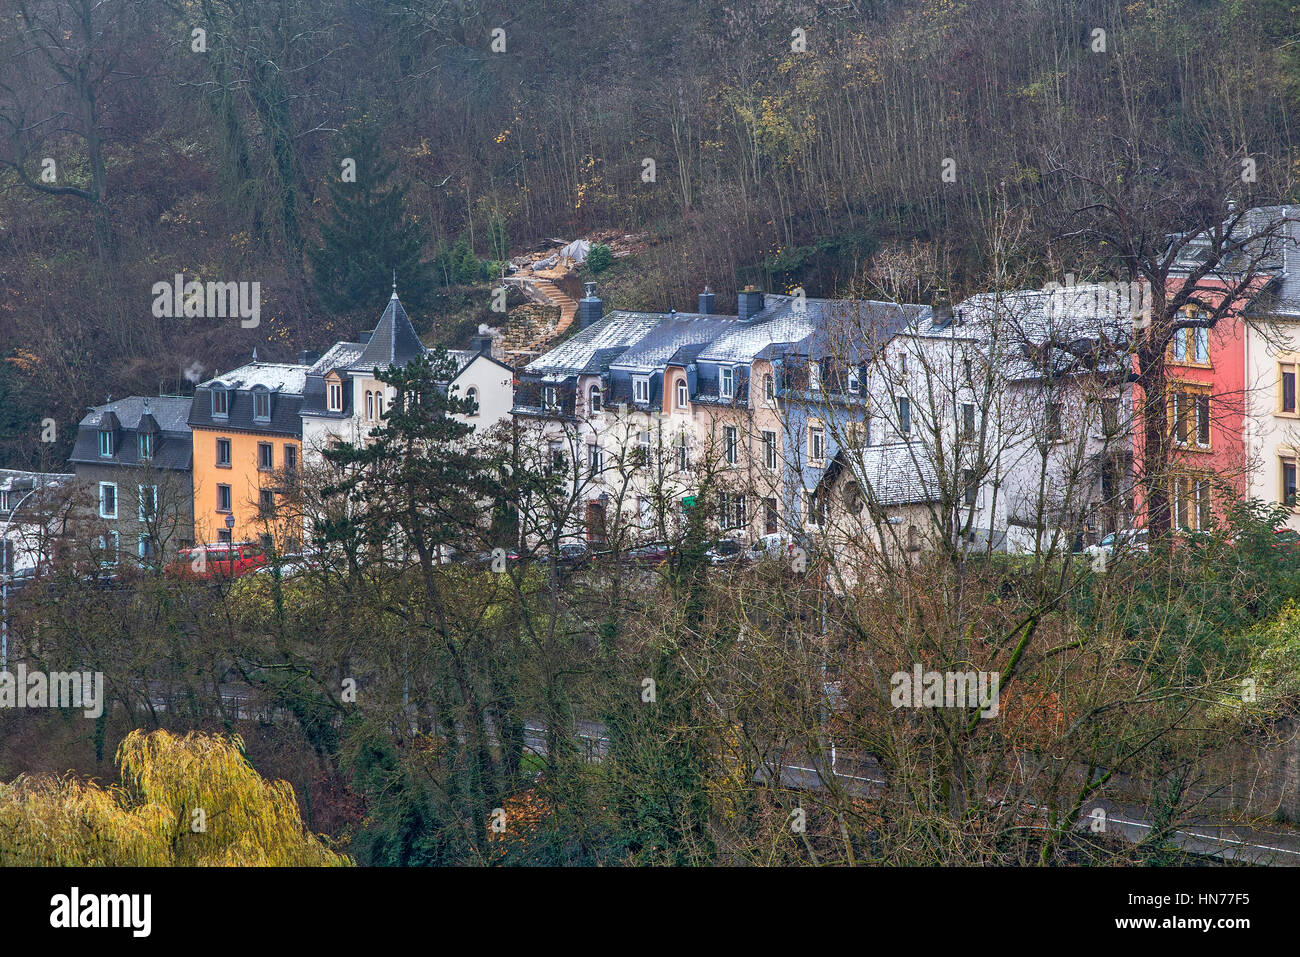 Historical houses of La Petrusse Luxembourg - Stock Image